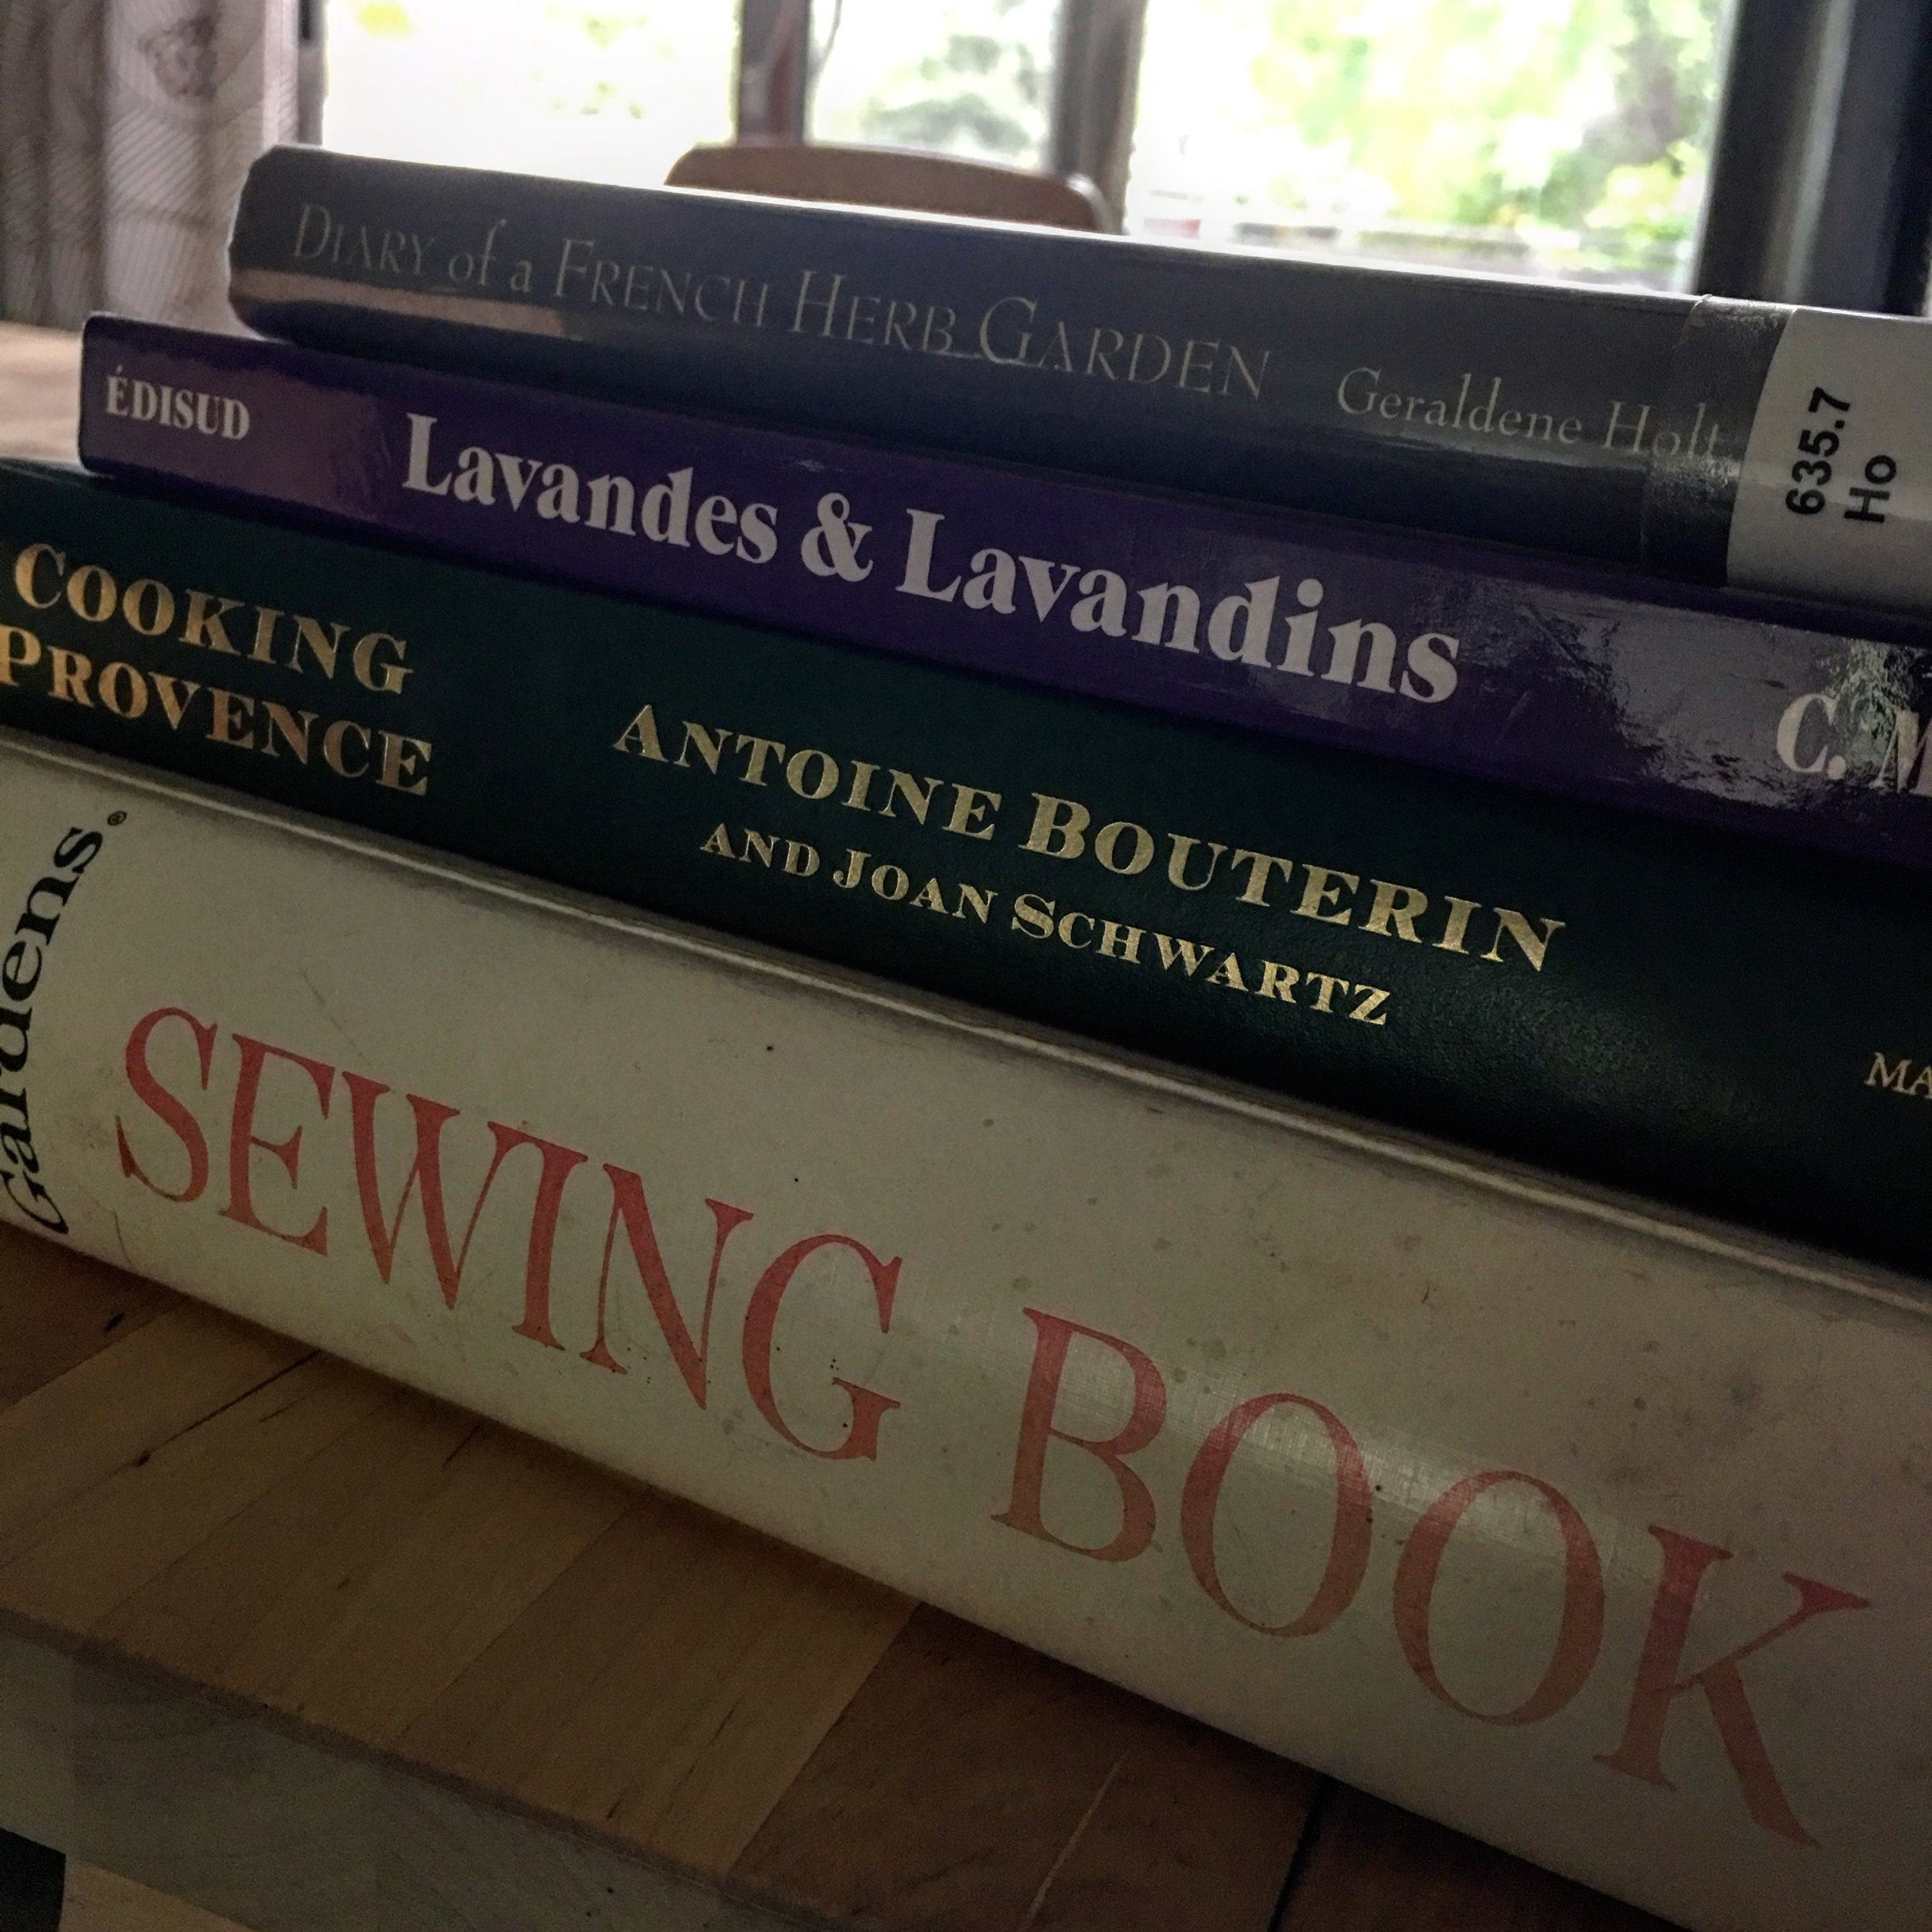 """I hit up the public library's Book Sale Day, which ended up being less a """"sale"""" & more """"giving away all the books for free."""" I got something to fuel each of my hobbies: French language maintenance,lavender growing, cooking, & sewing."""